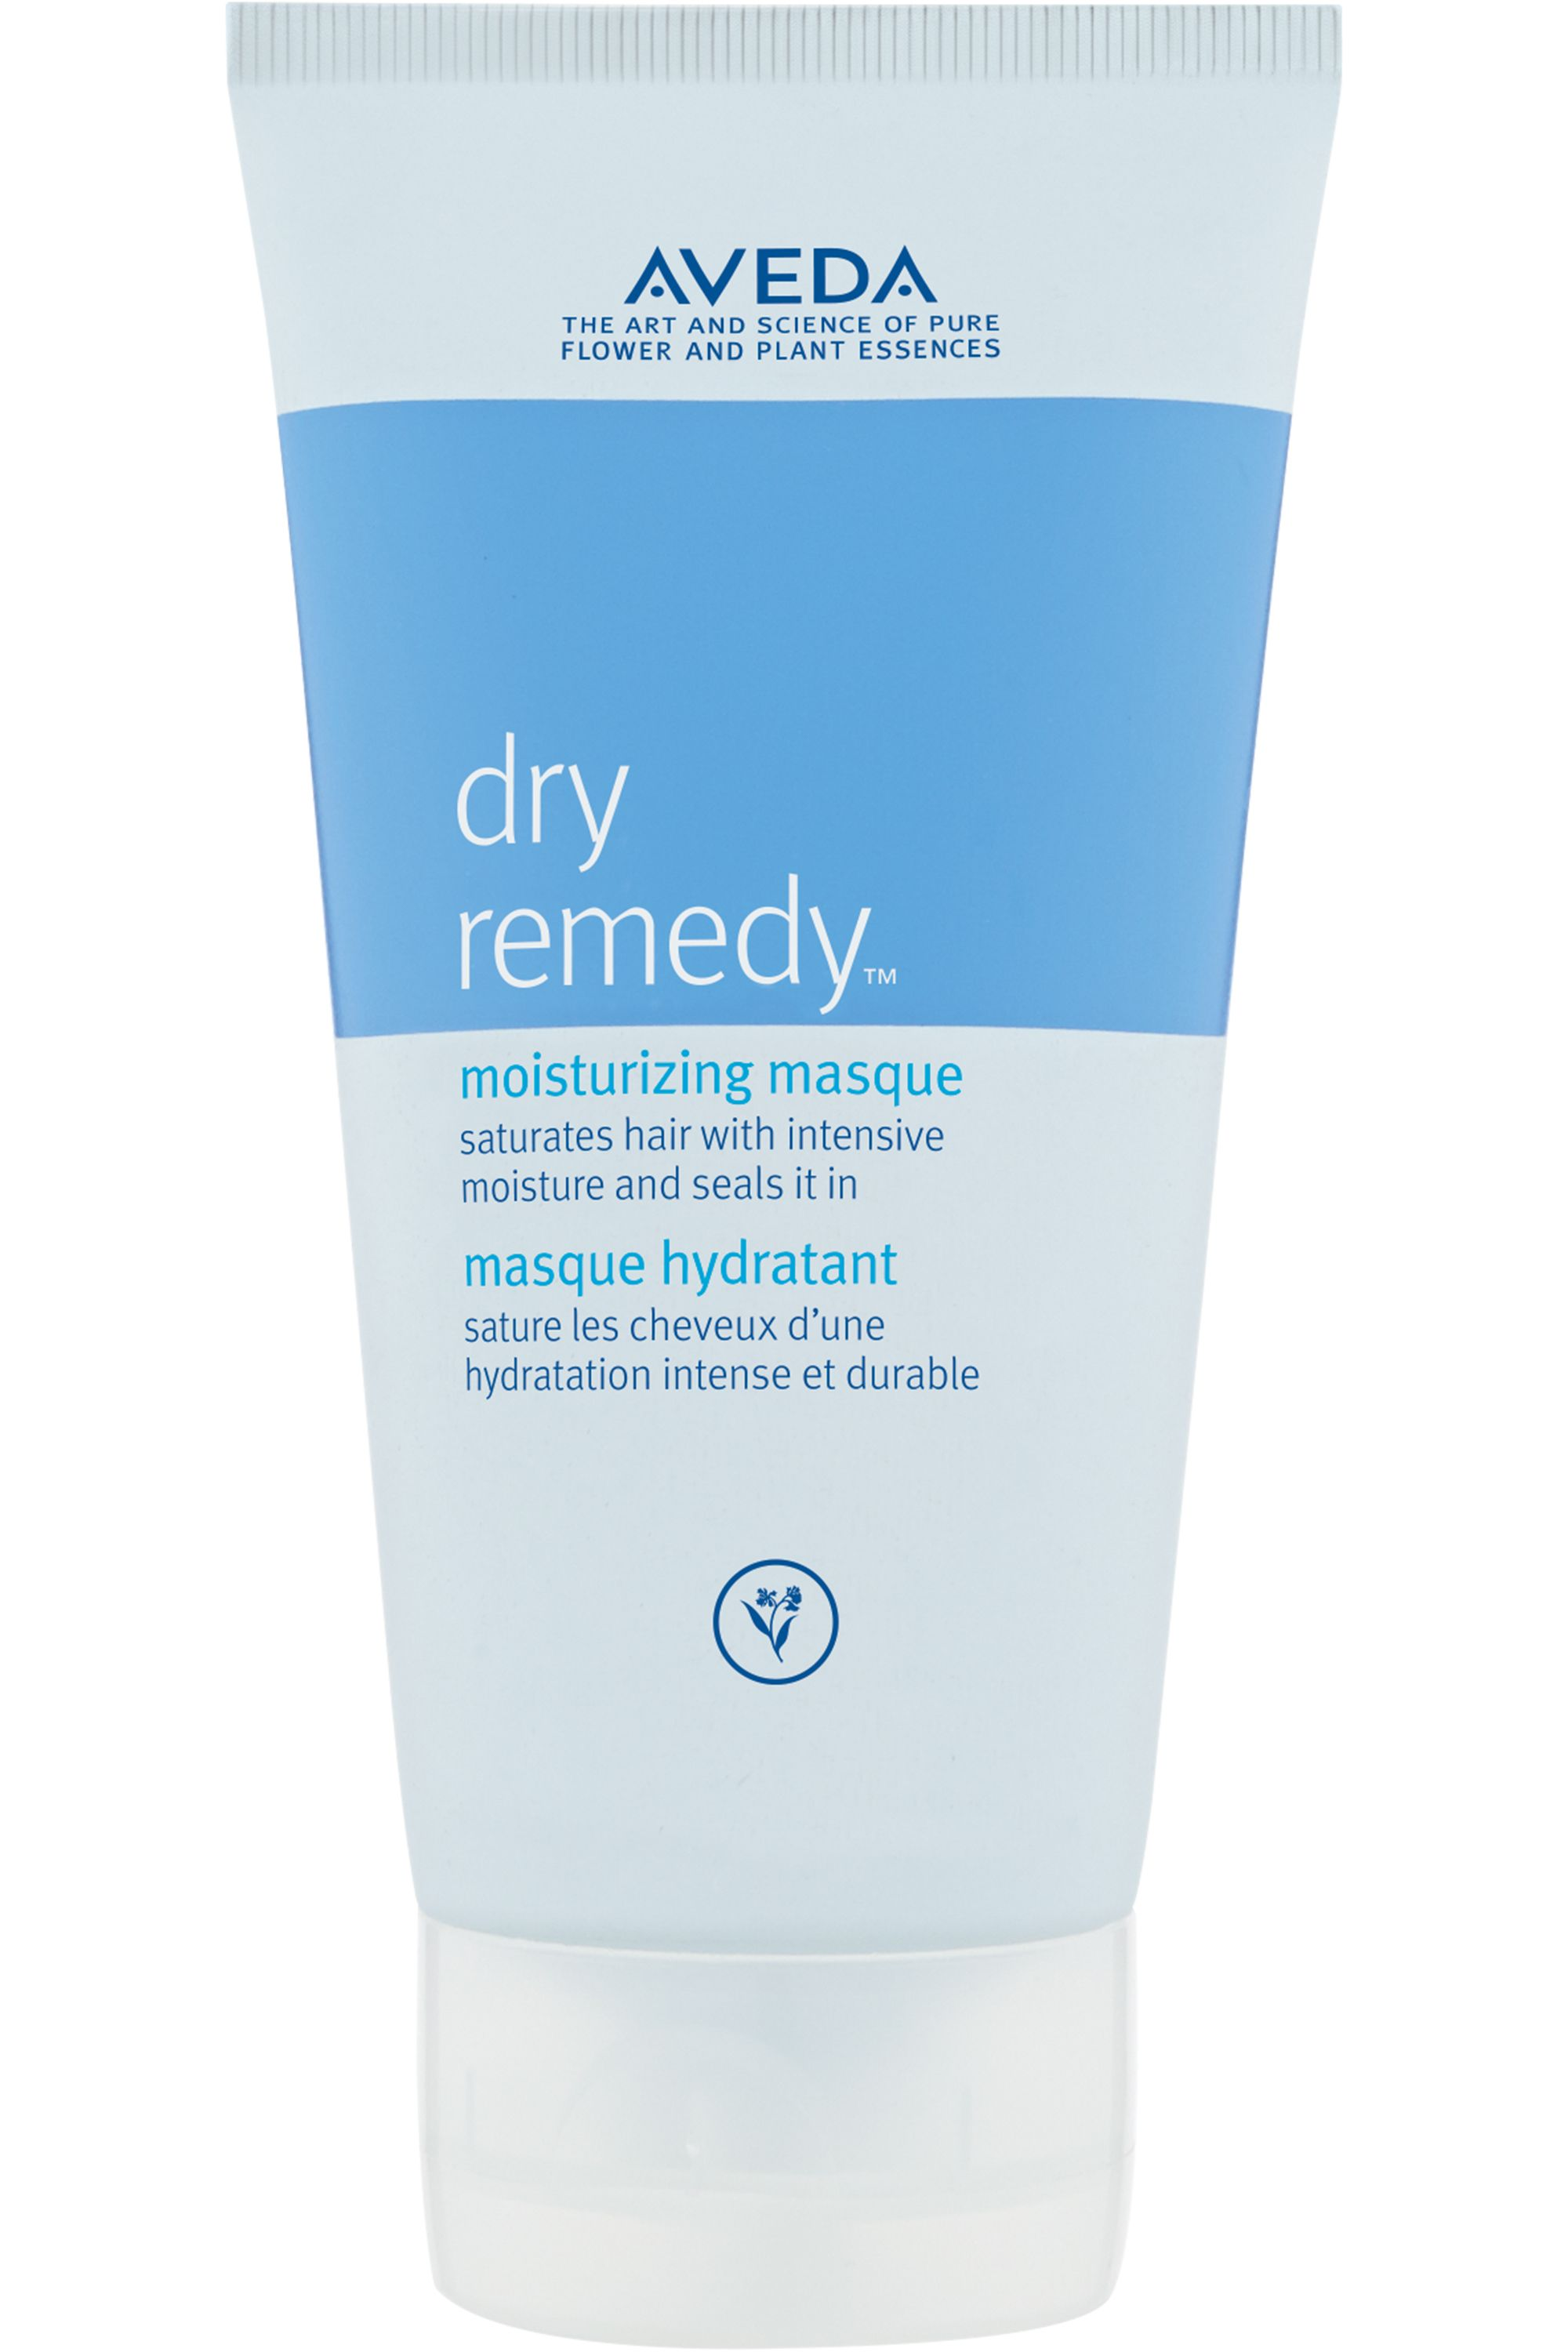 Blissim : Aveda - Dry Remedy ™ Moisturizing Masque - Dry Remedy ™ Moisturizing Masque